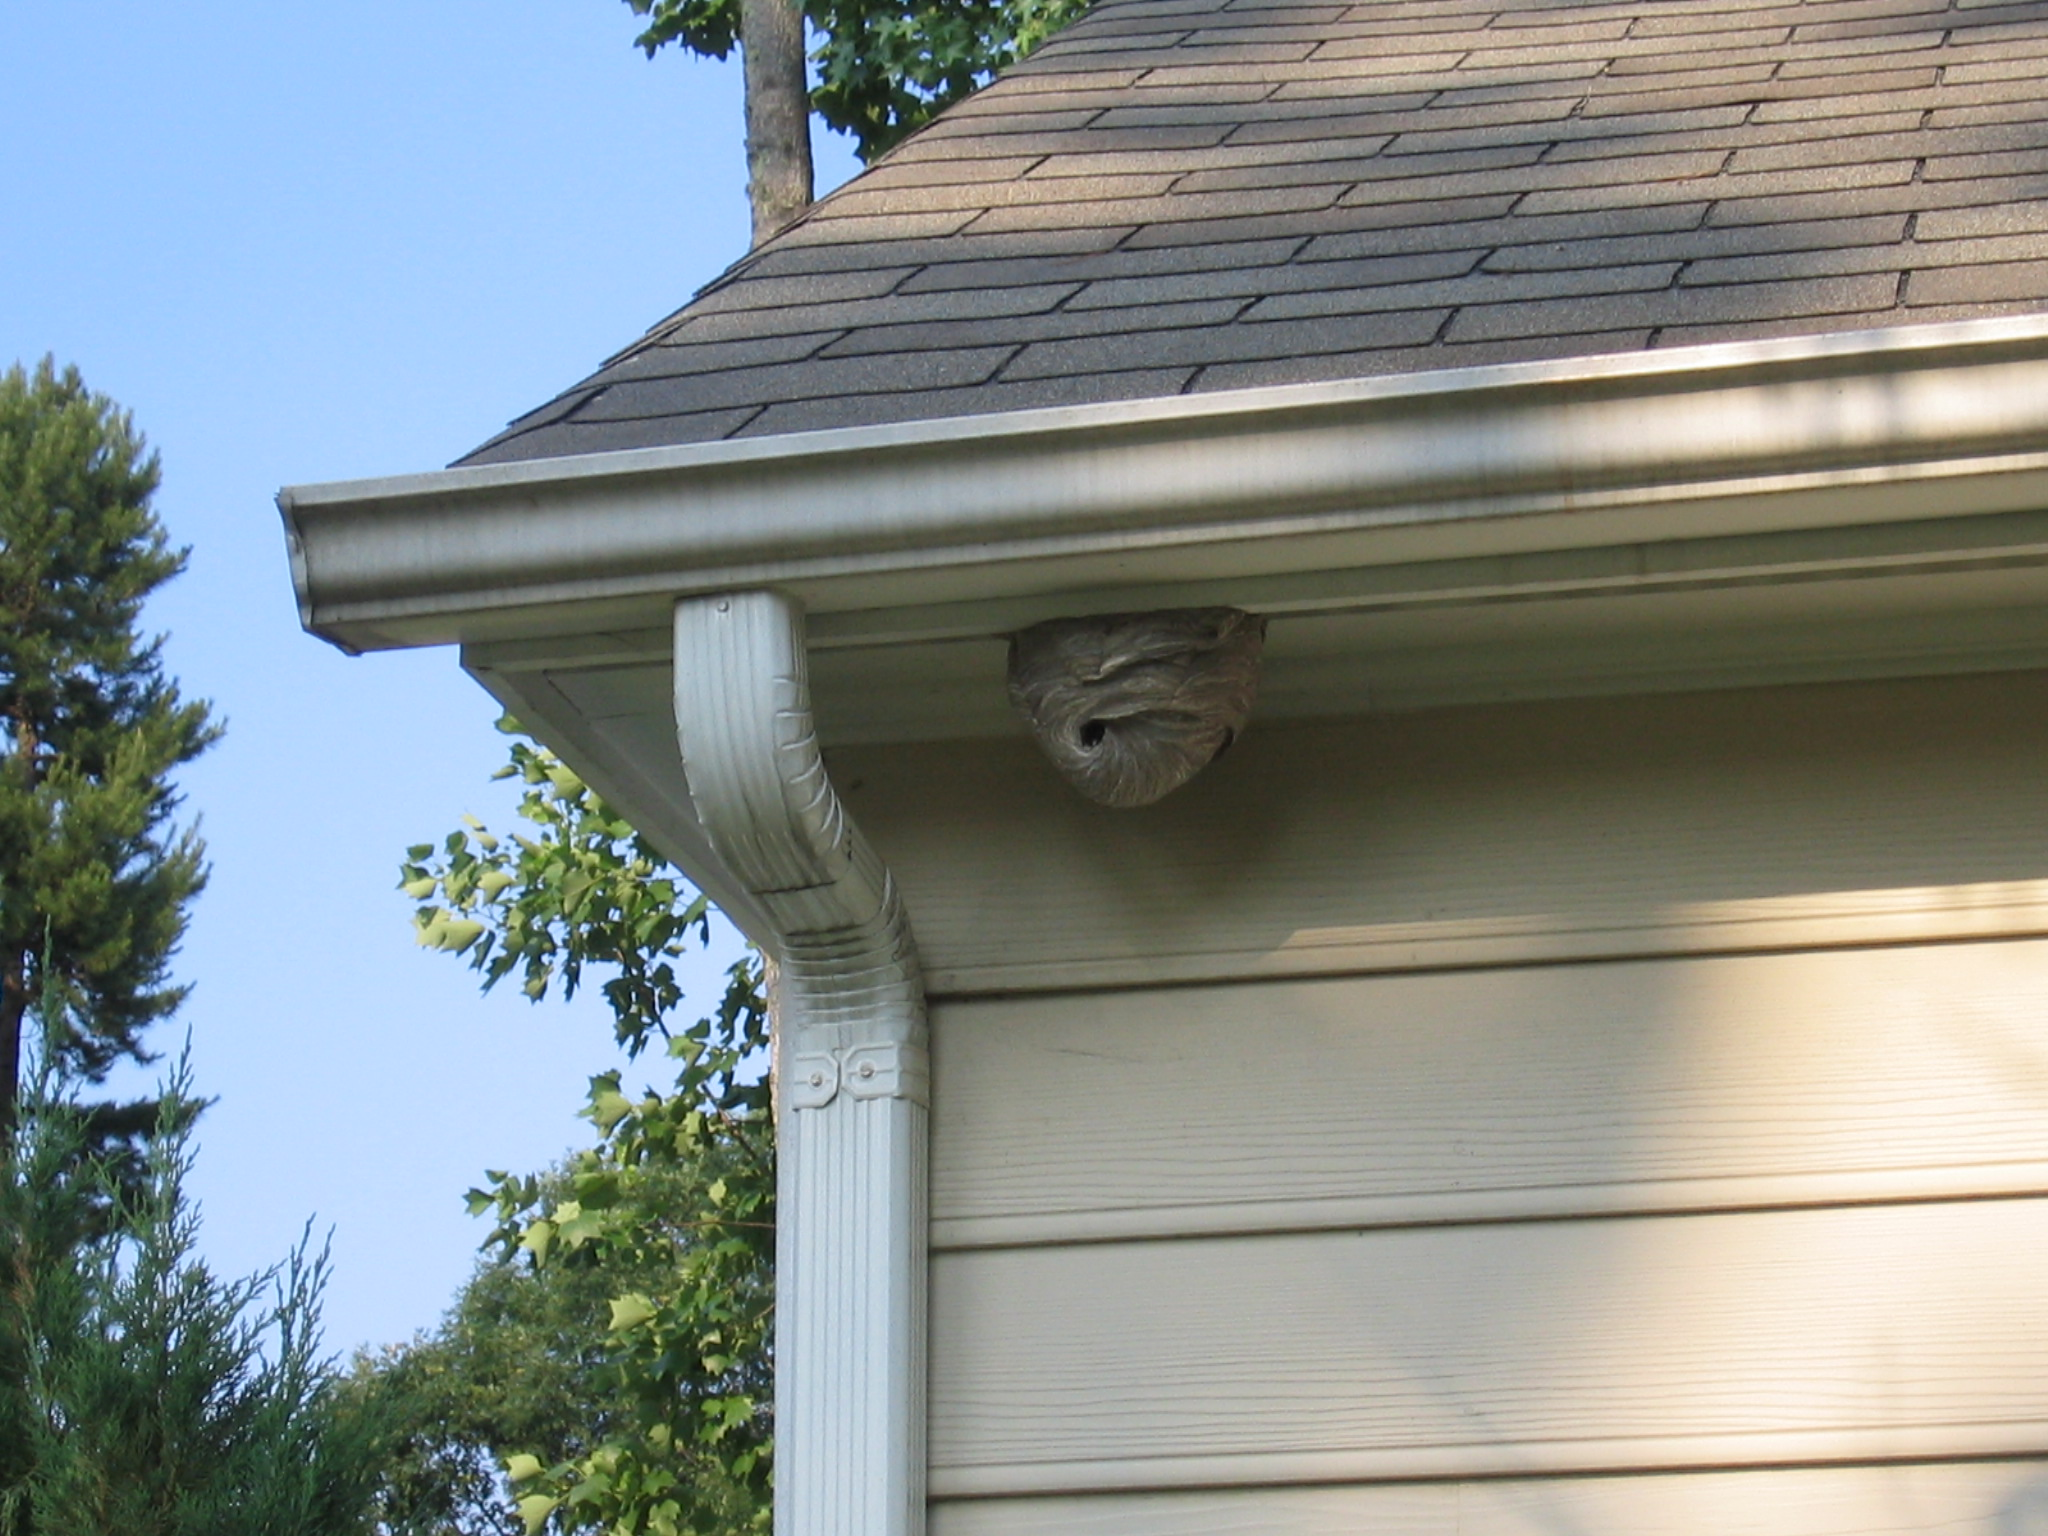 a wasp nest under the awning